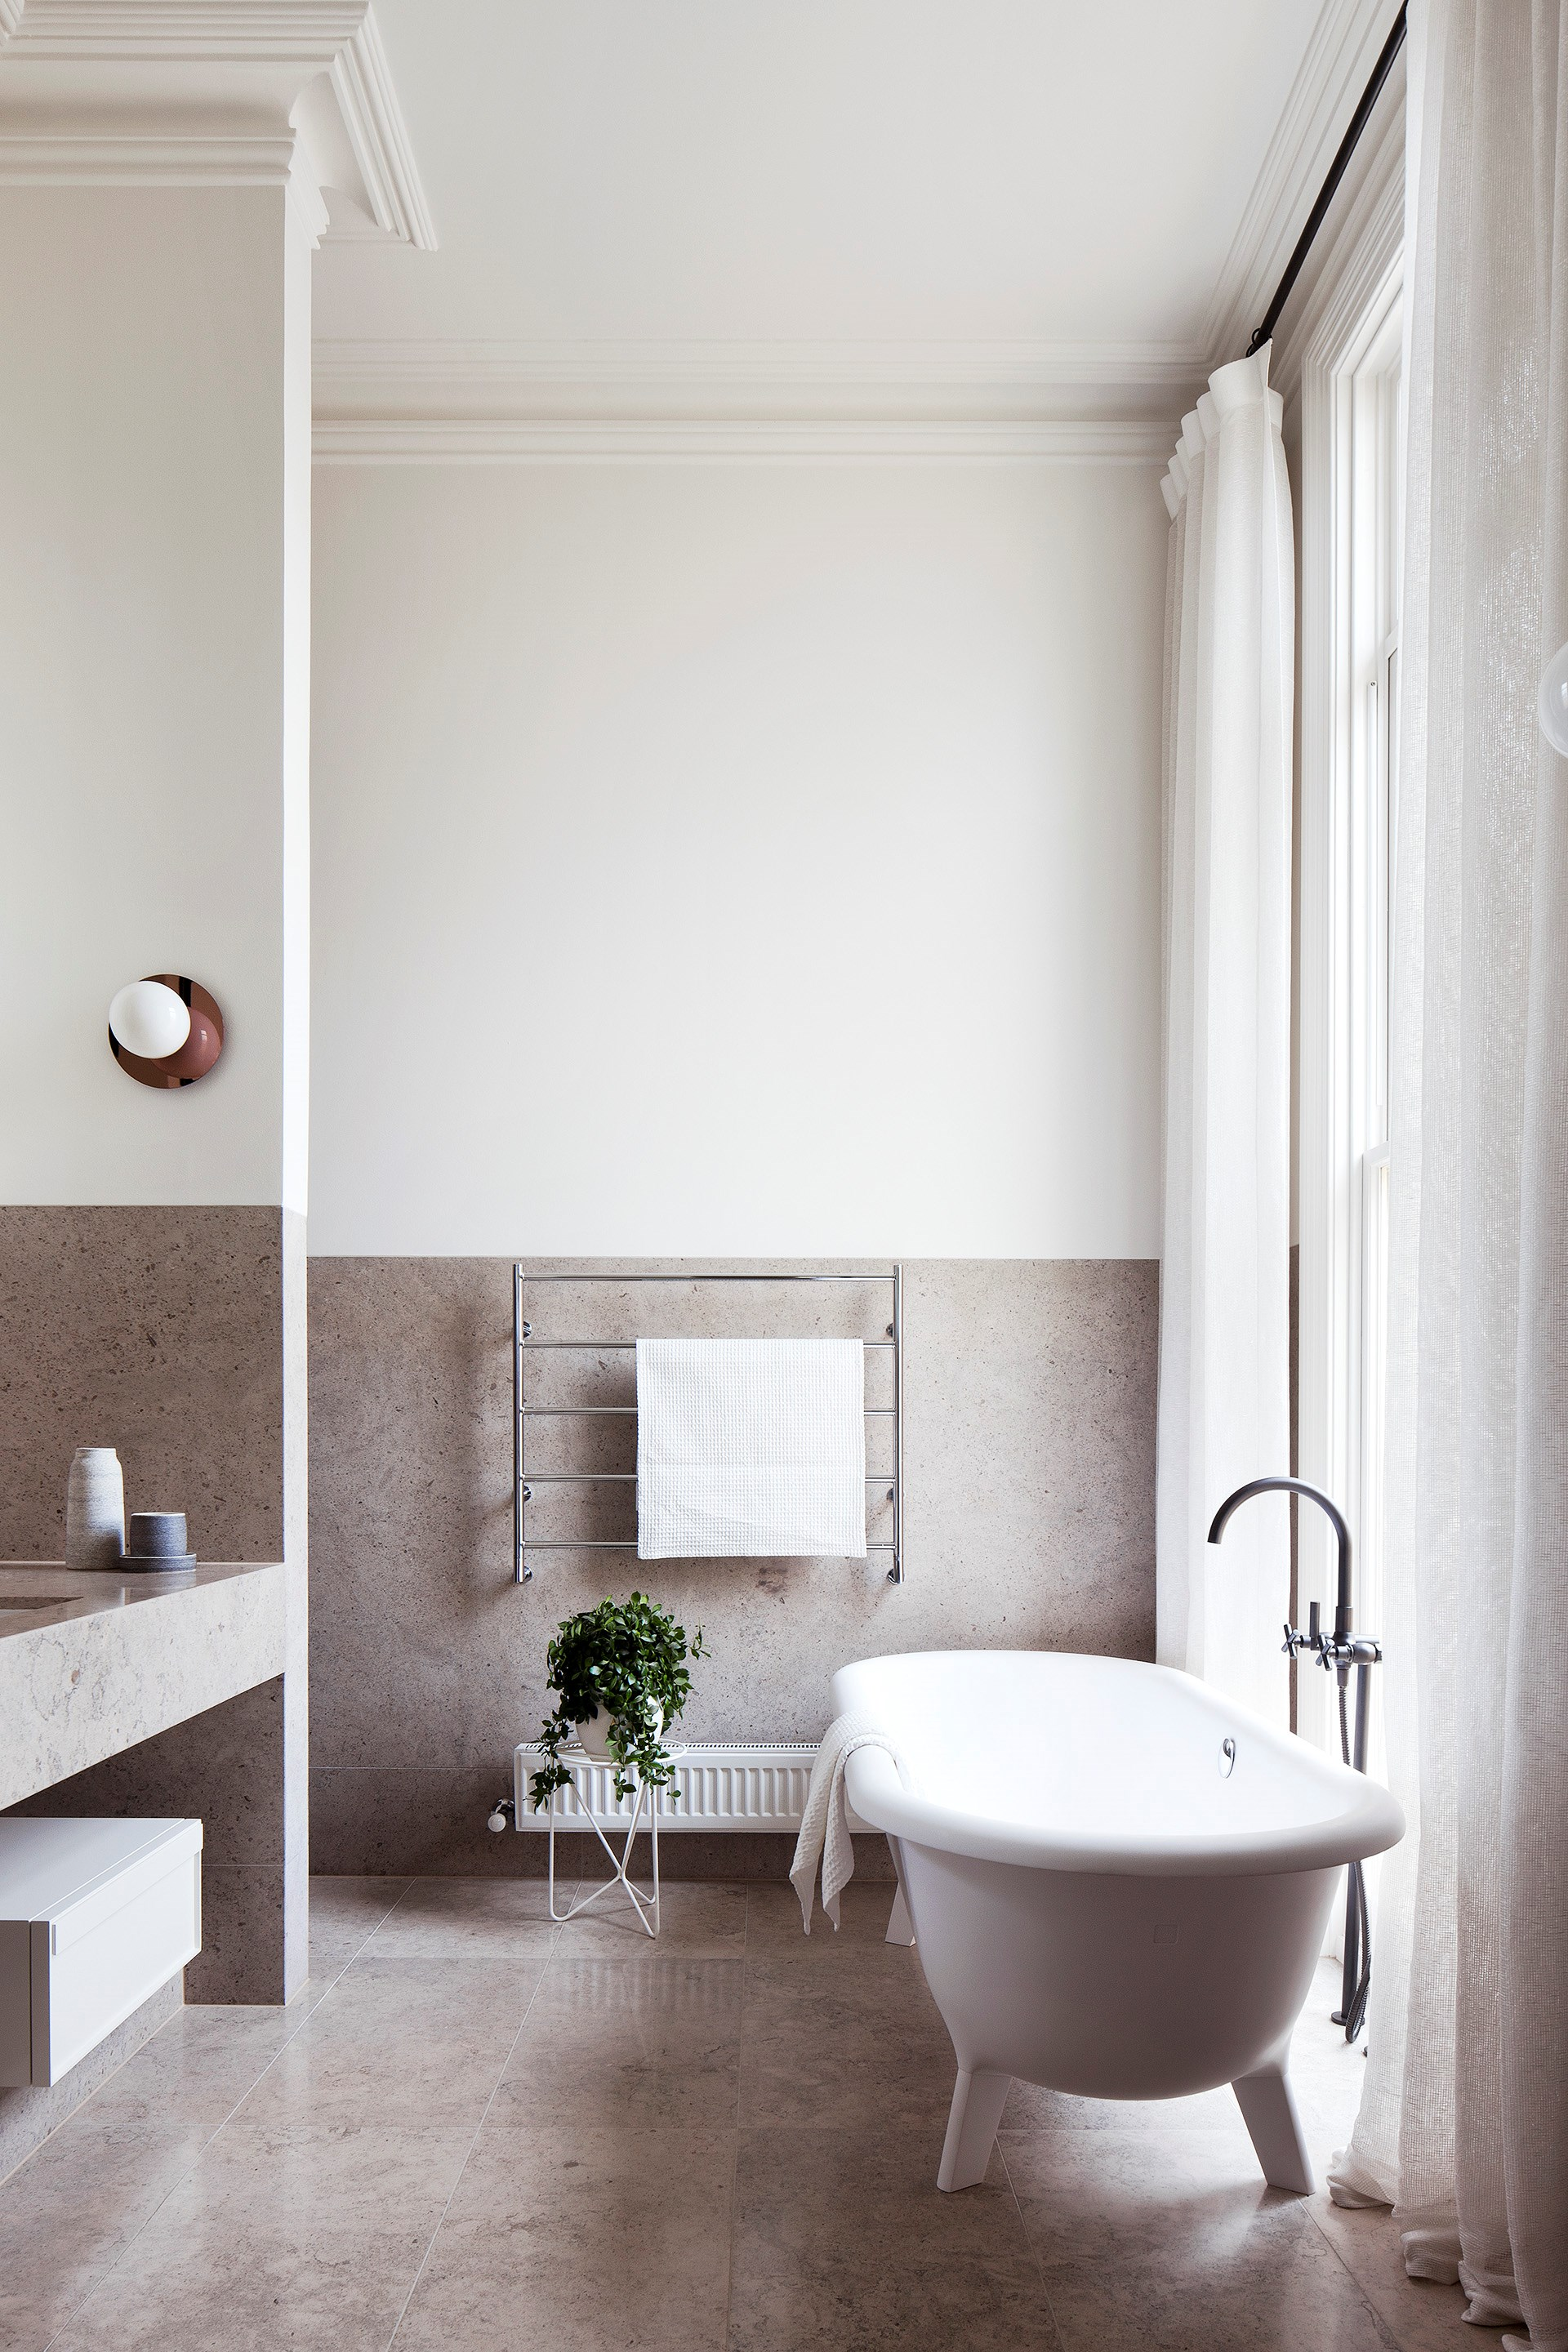 "The avant-garde lines of this Benedini 'Ottocento' bath from [Agape](http://www.agapedesign.it/|target=""_blank""